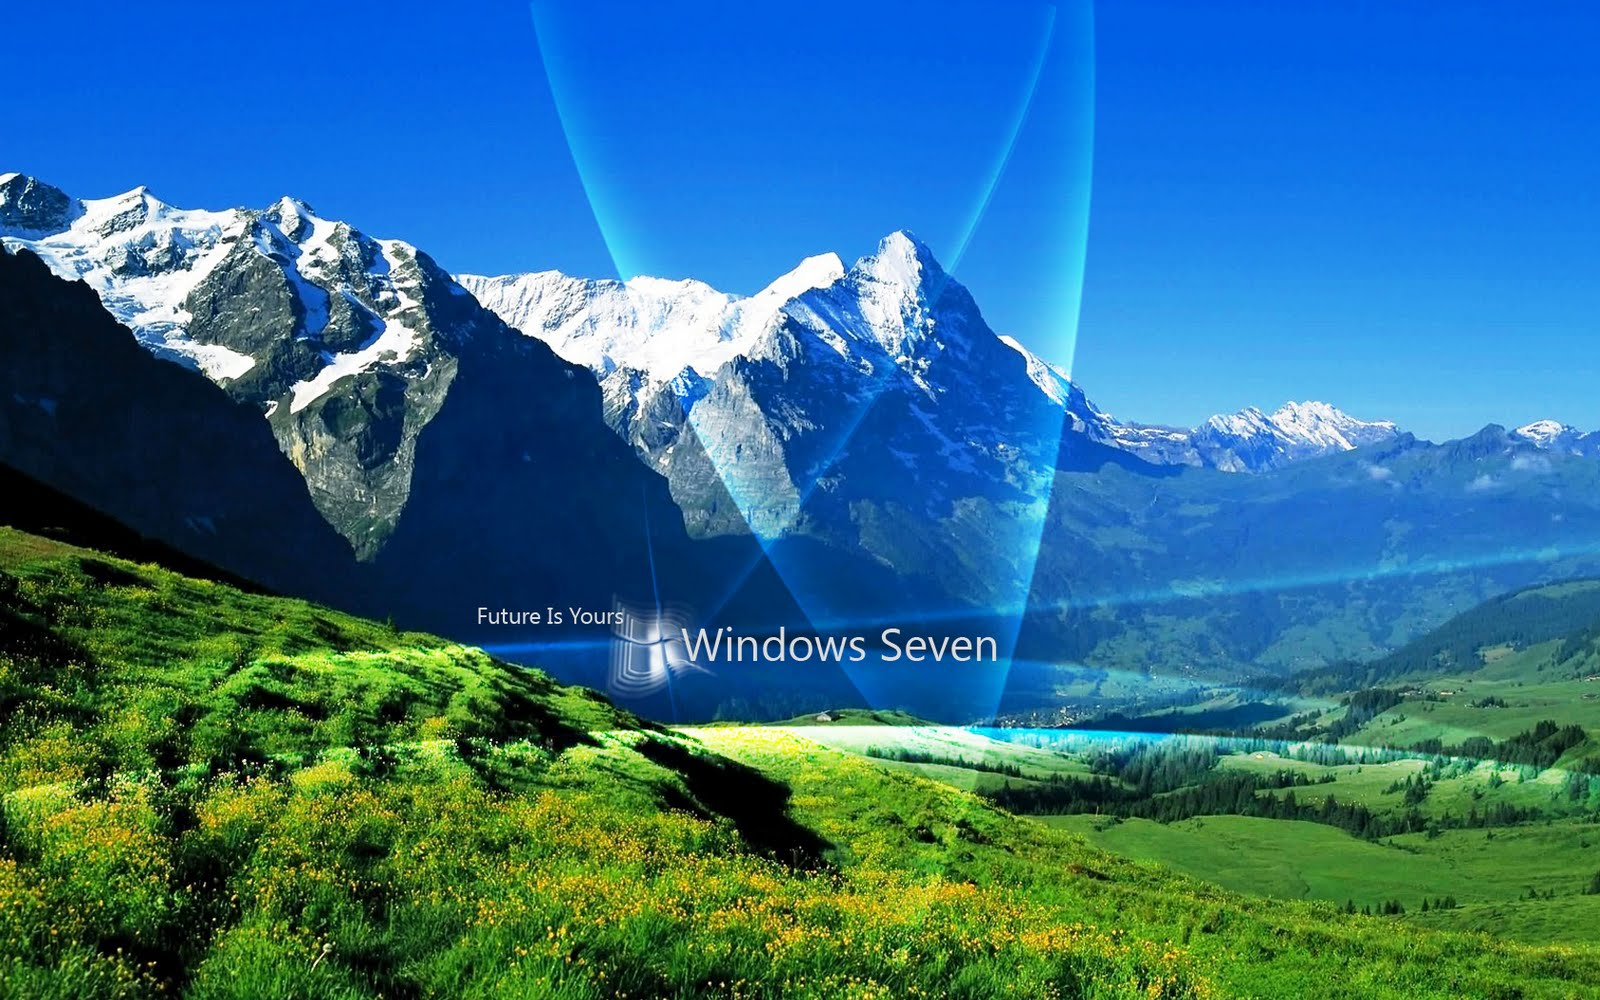 Panoramic Wallpaper Of Windows 7 Images Gallery